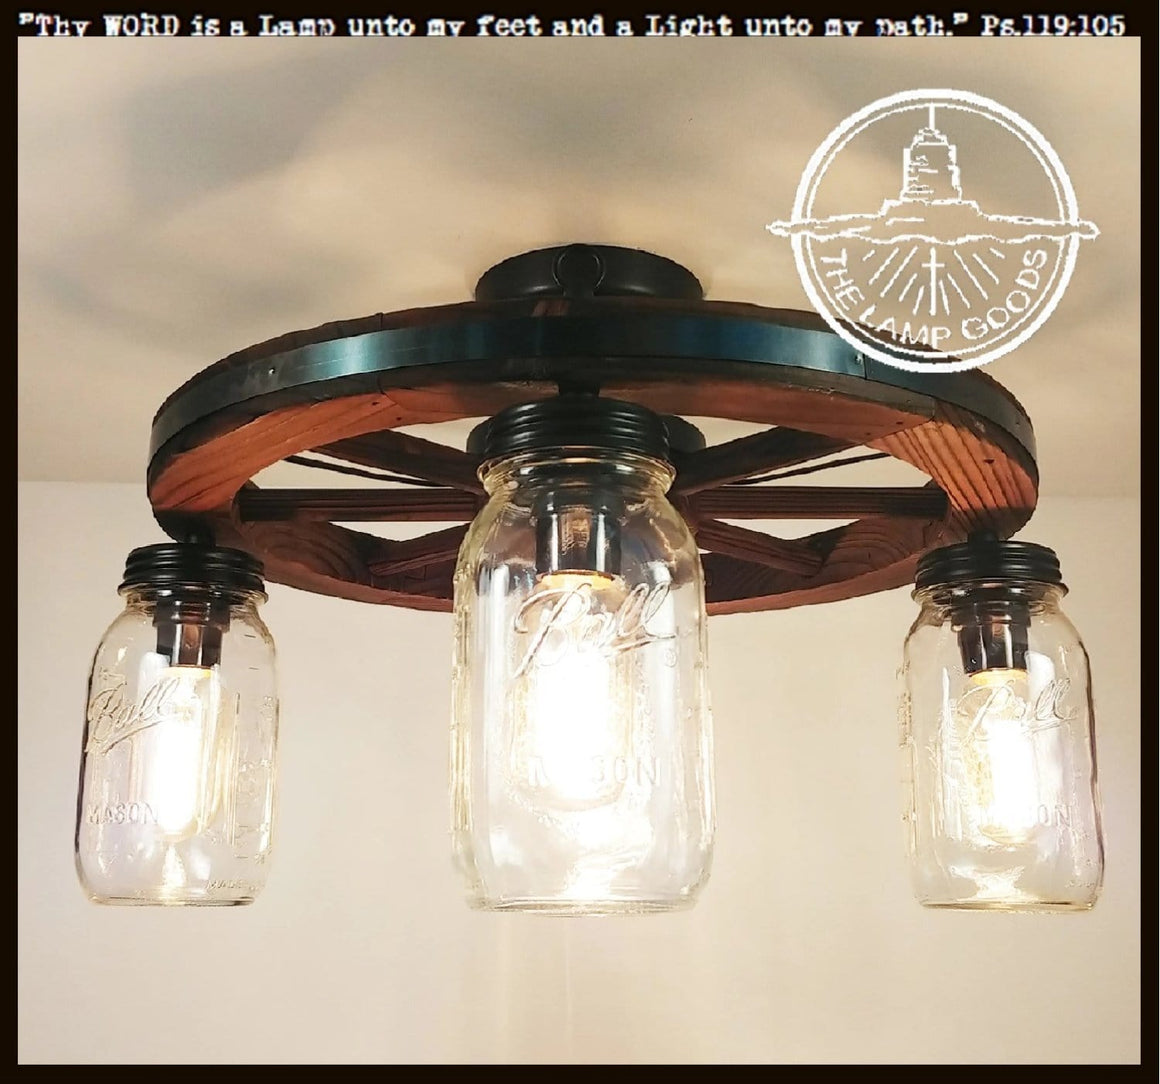 Wooden Wagon Wheel Ceiling Light of Mason Jars - The Lamp Goods